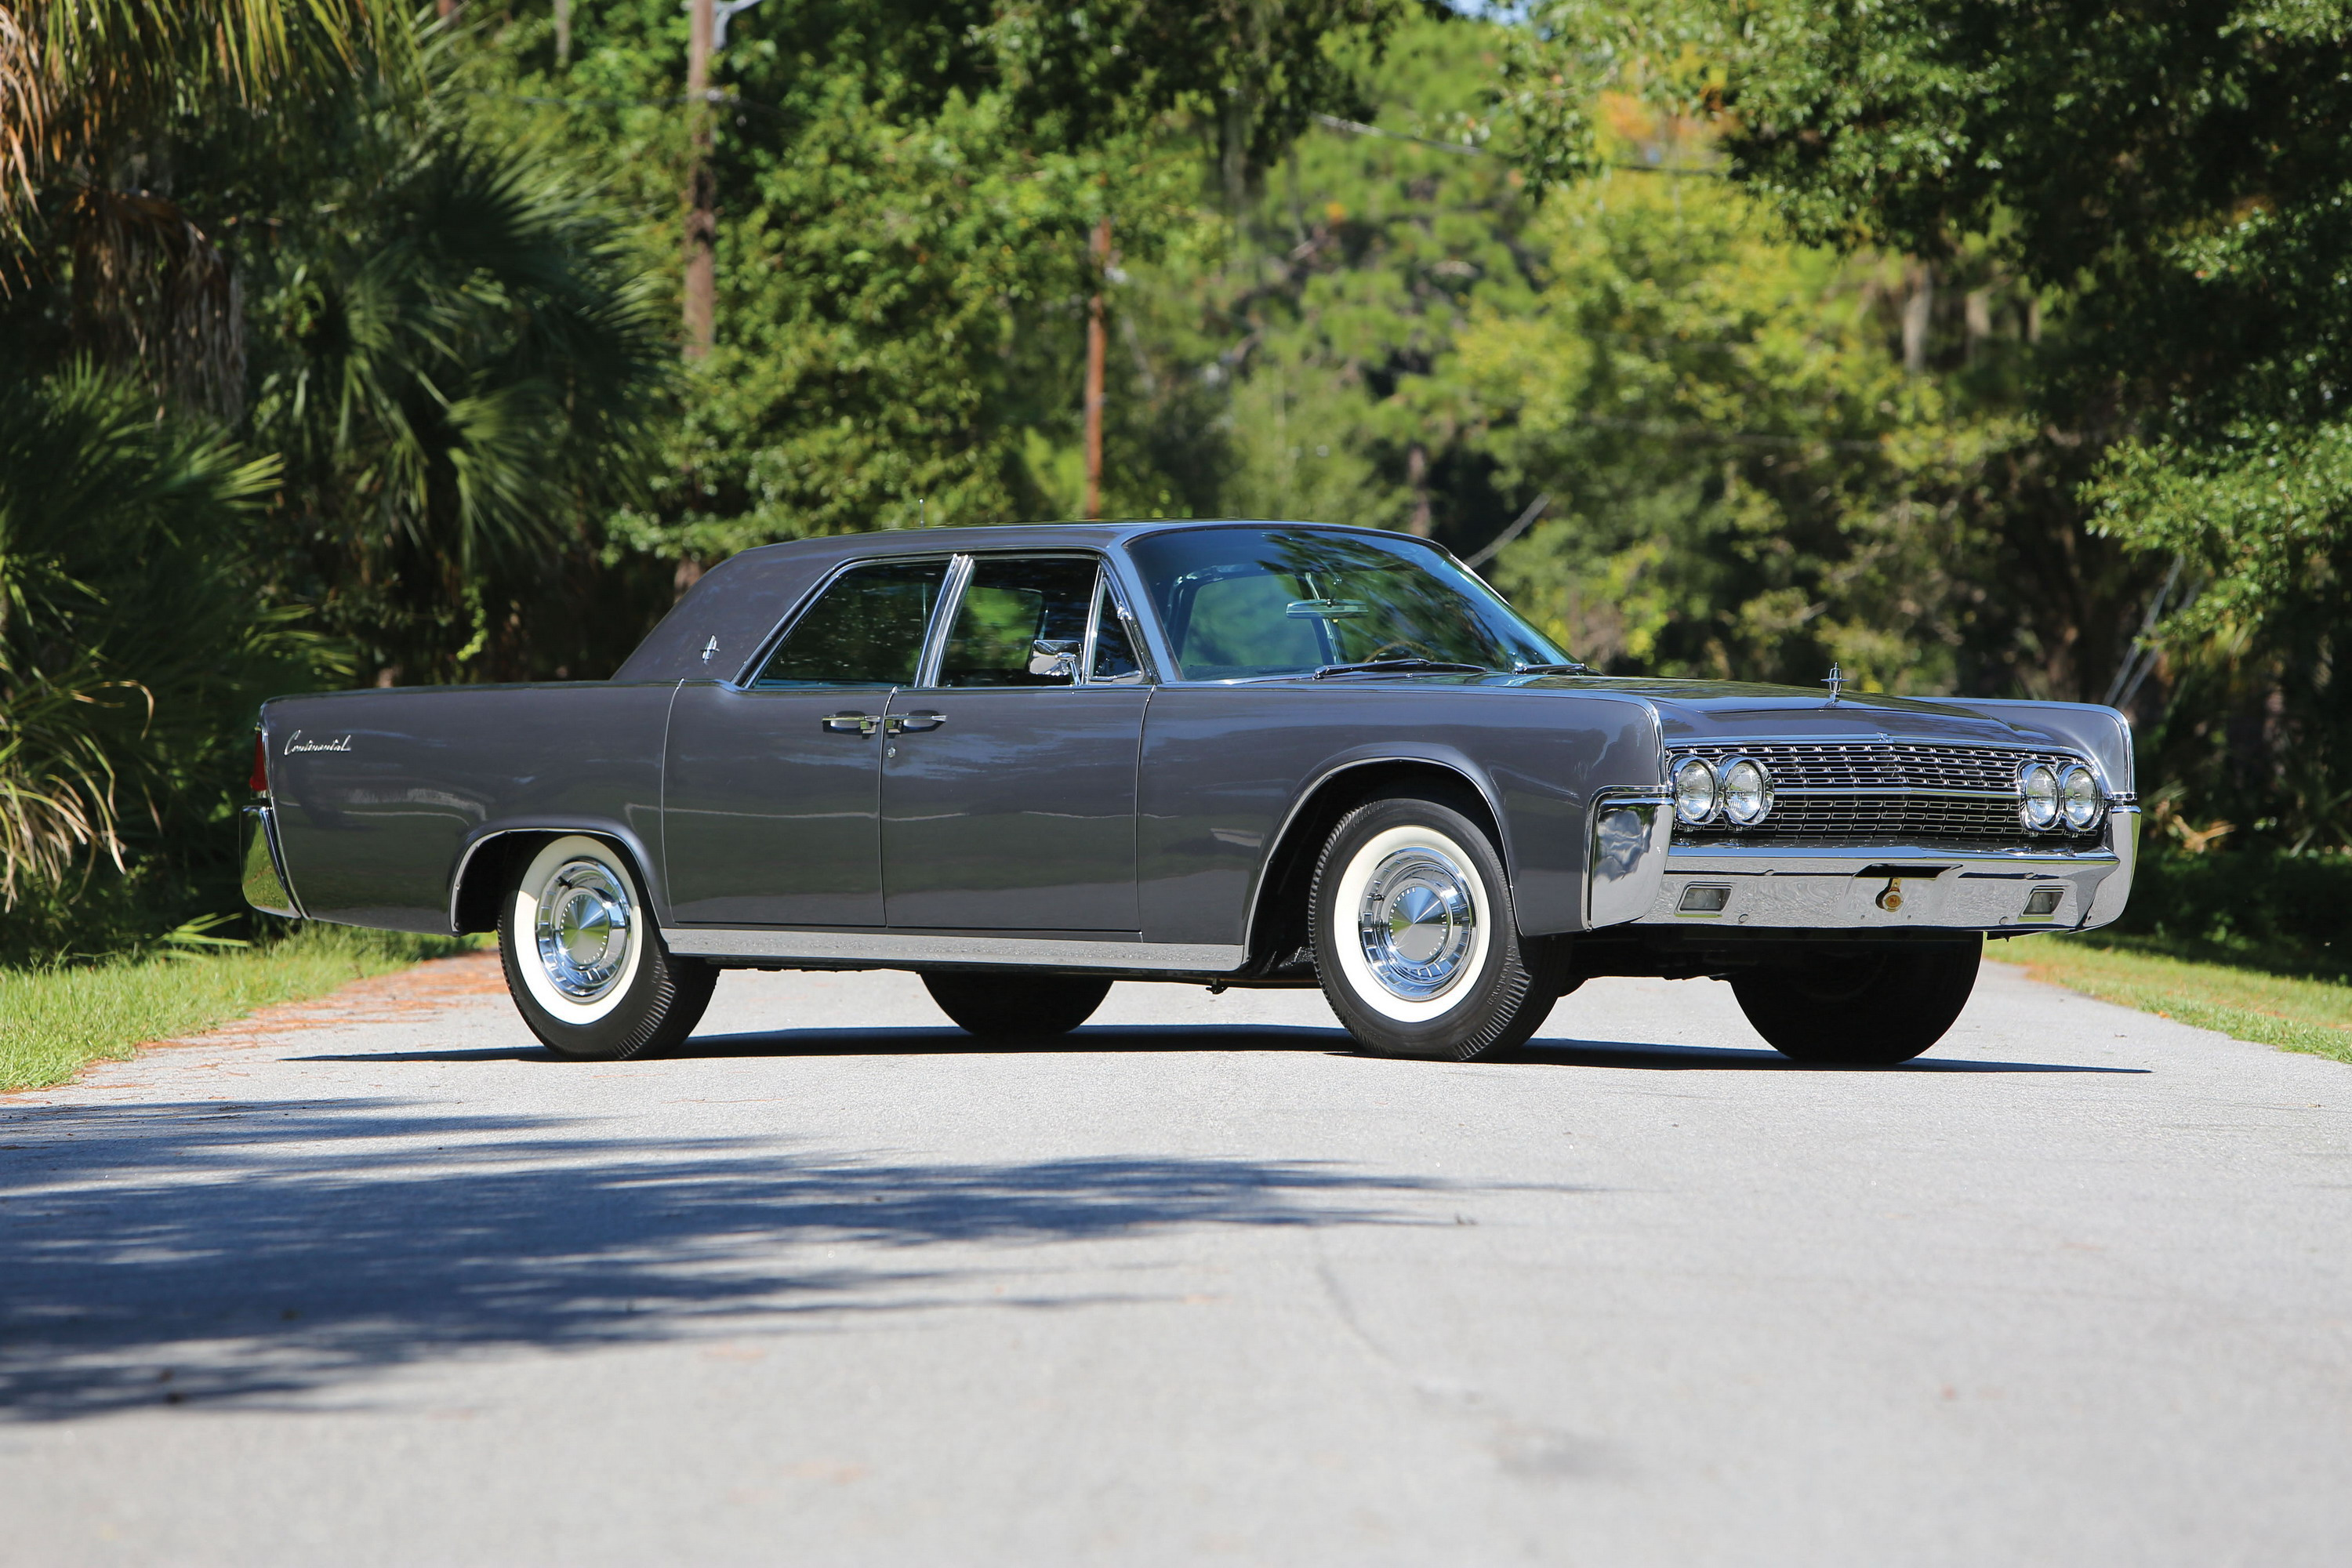 2017 Lincoln Continental Review - Top Speed